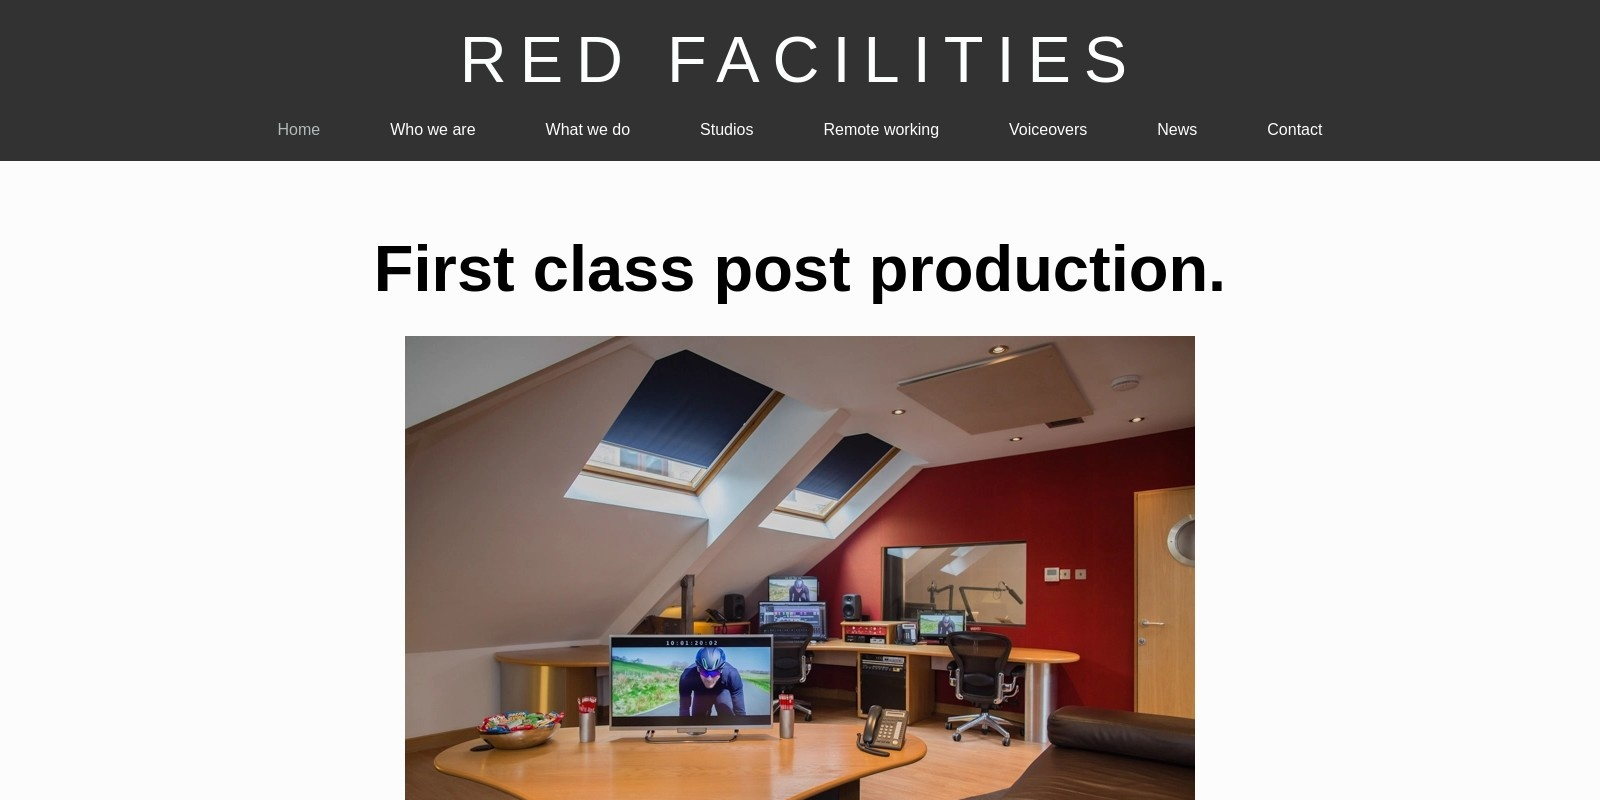 Preview of https://www.redfacilities.com